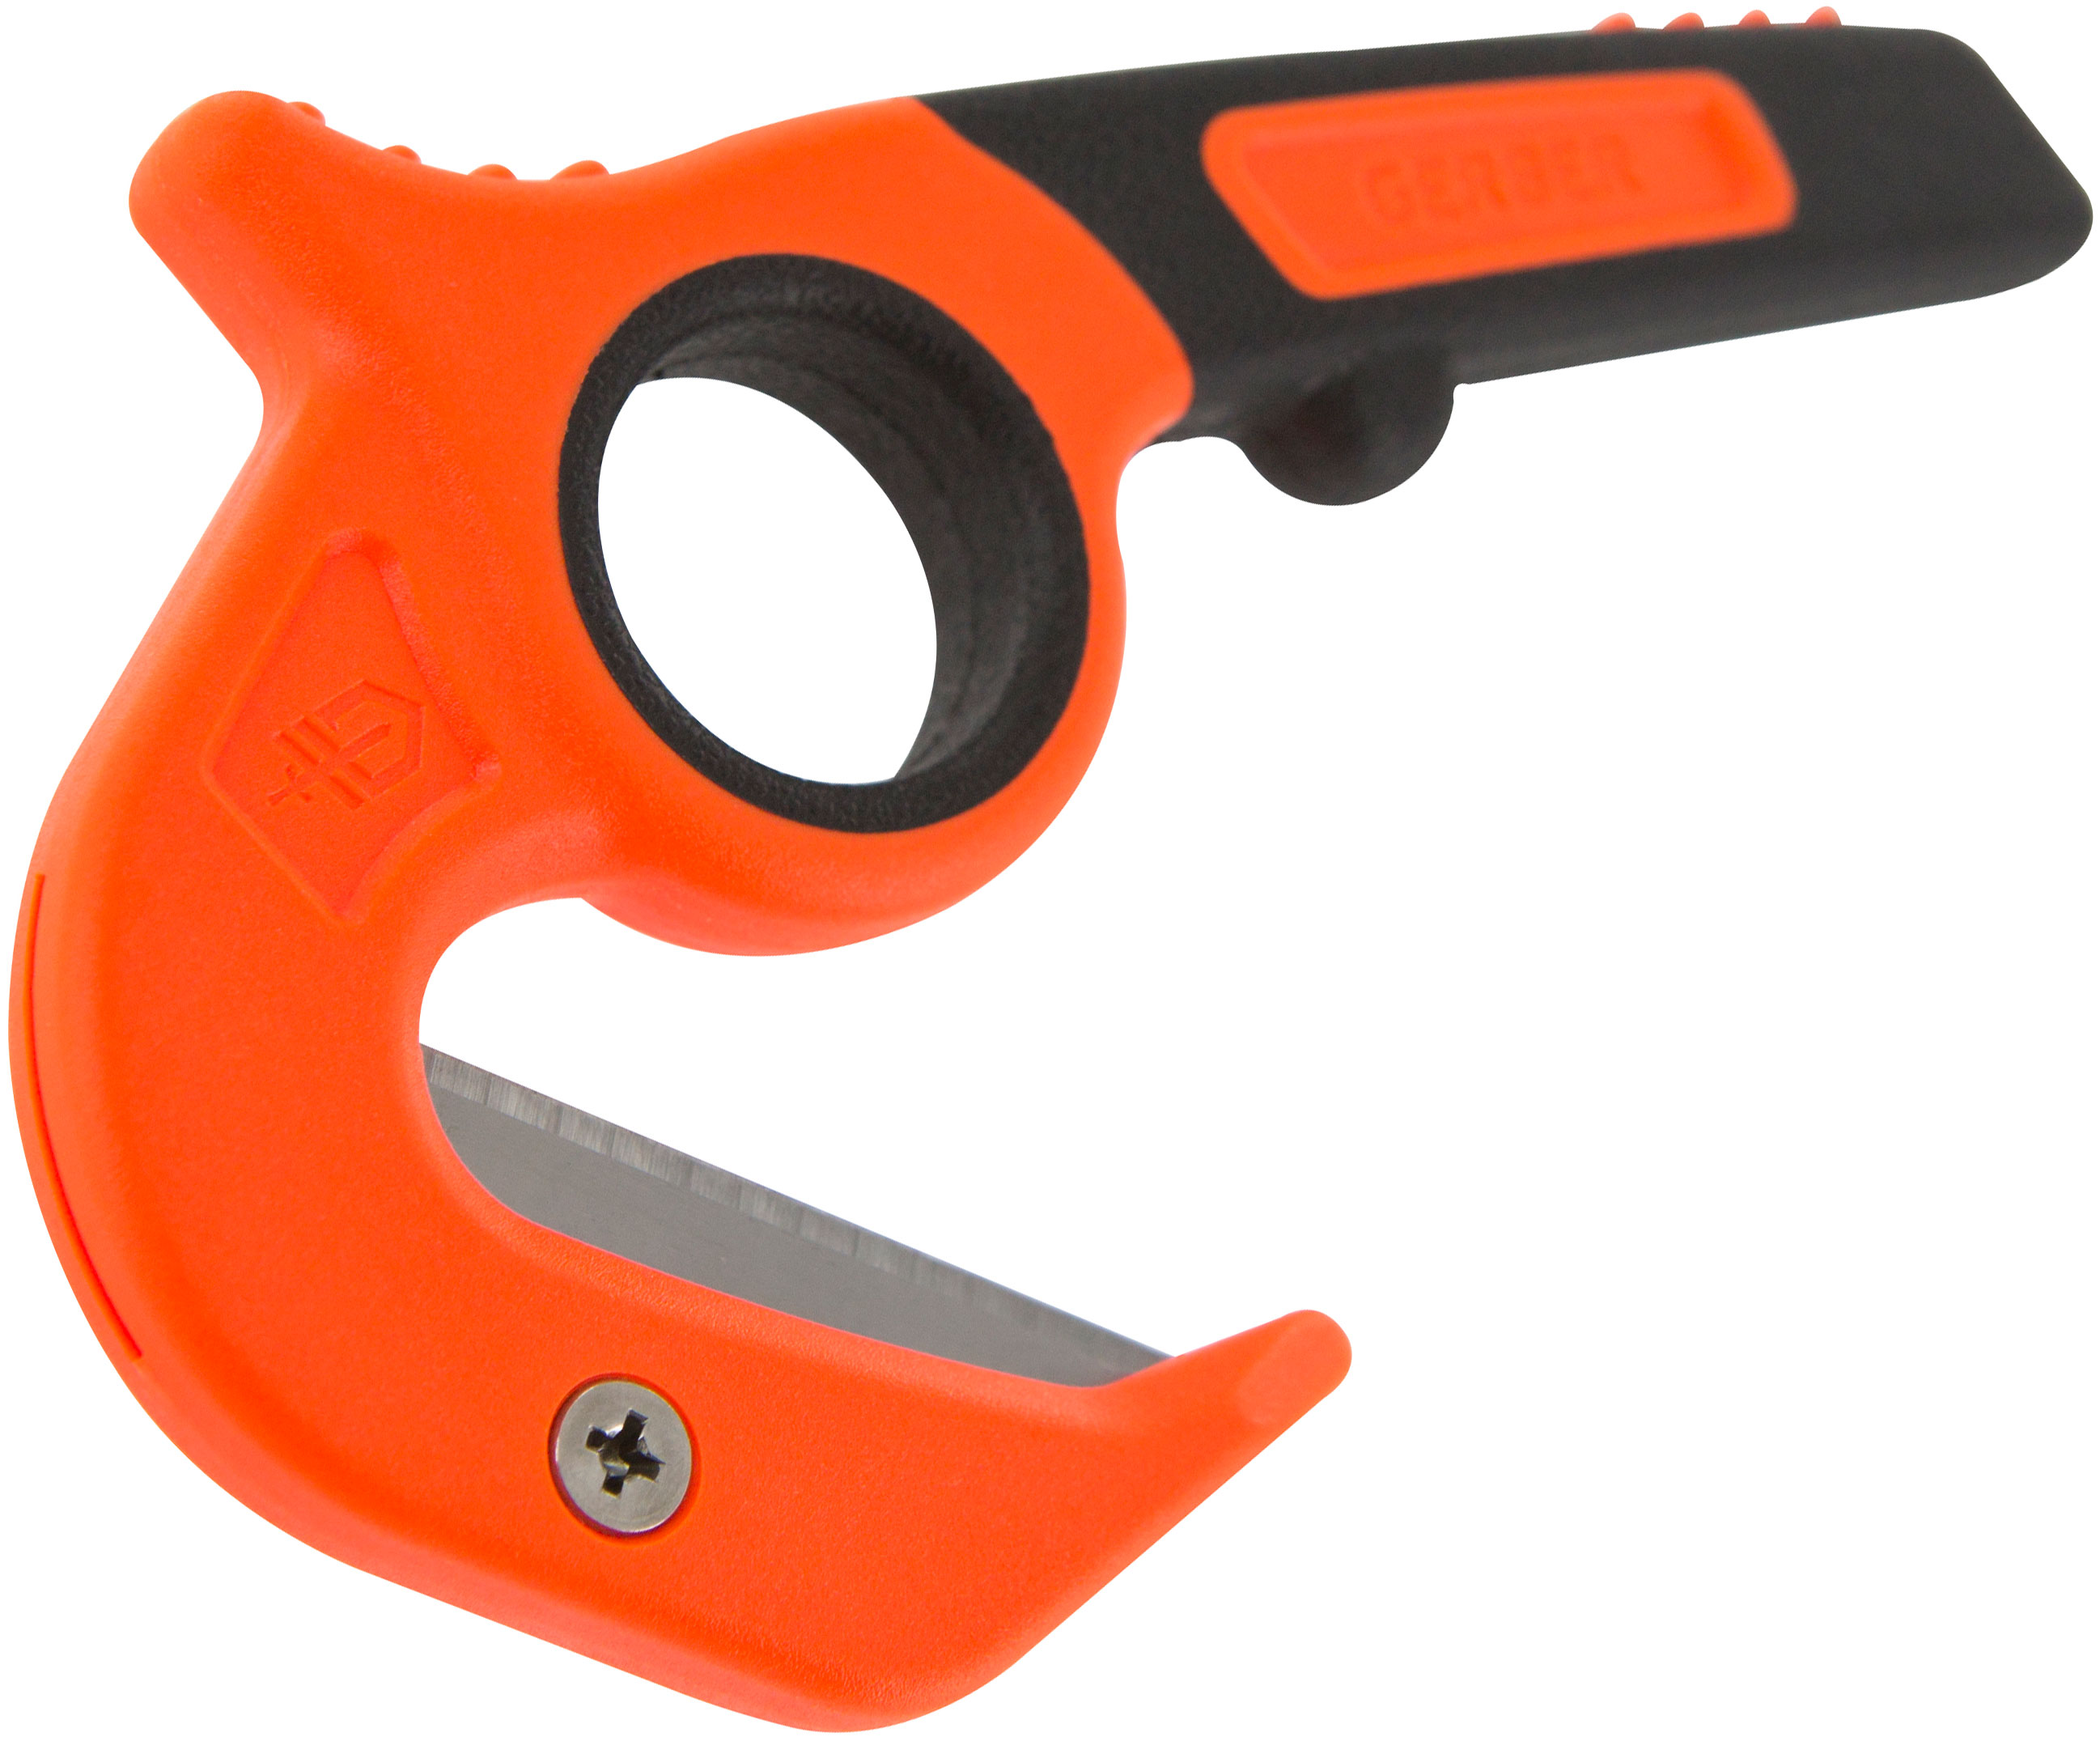 Buy Strap Cutters/Rescue Hooks  at KnifeCenter